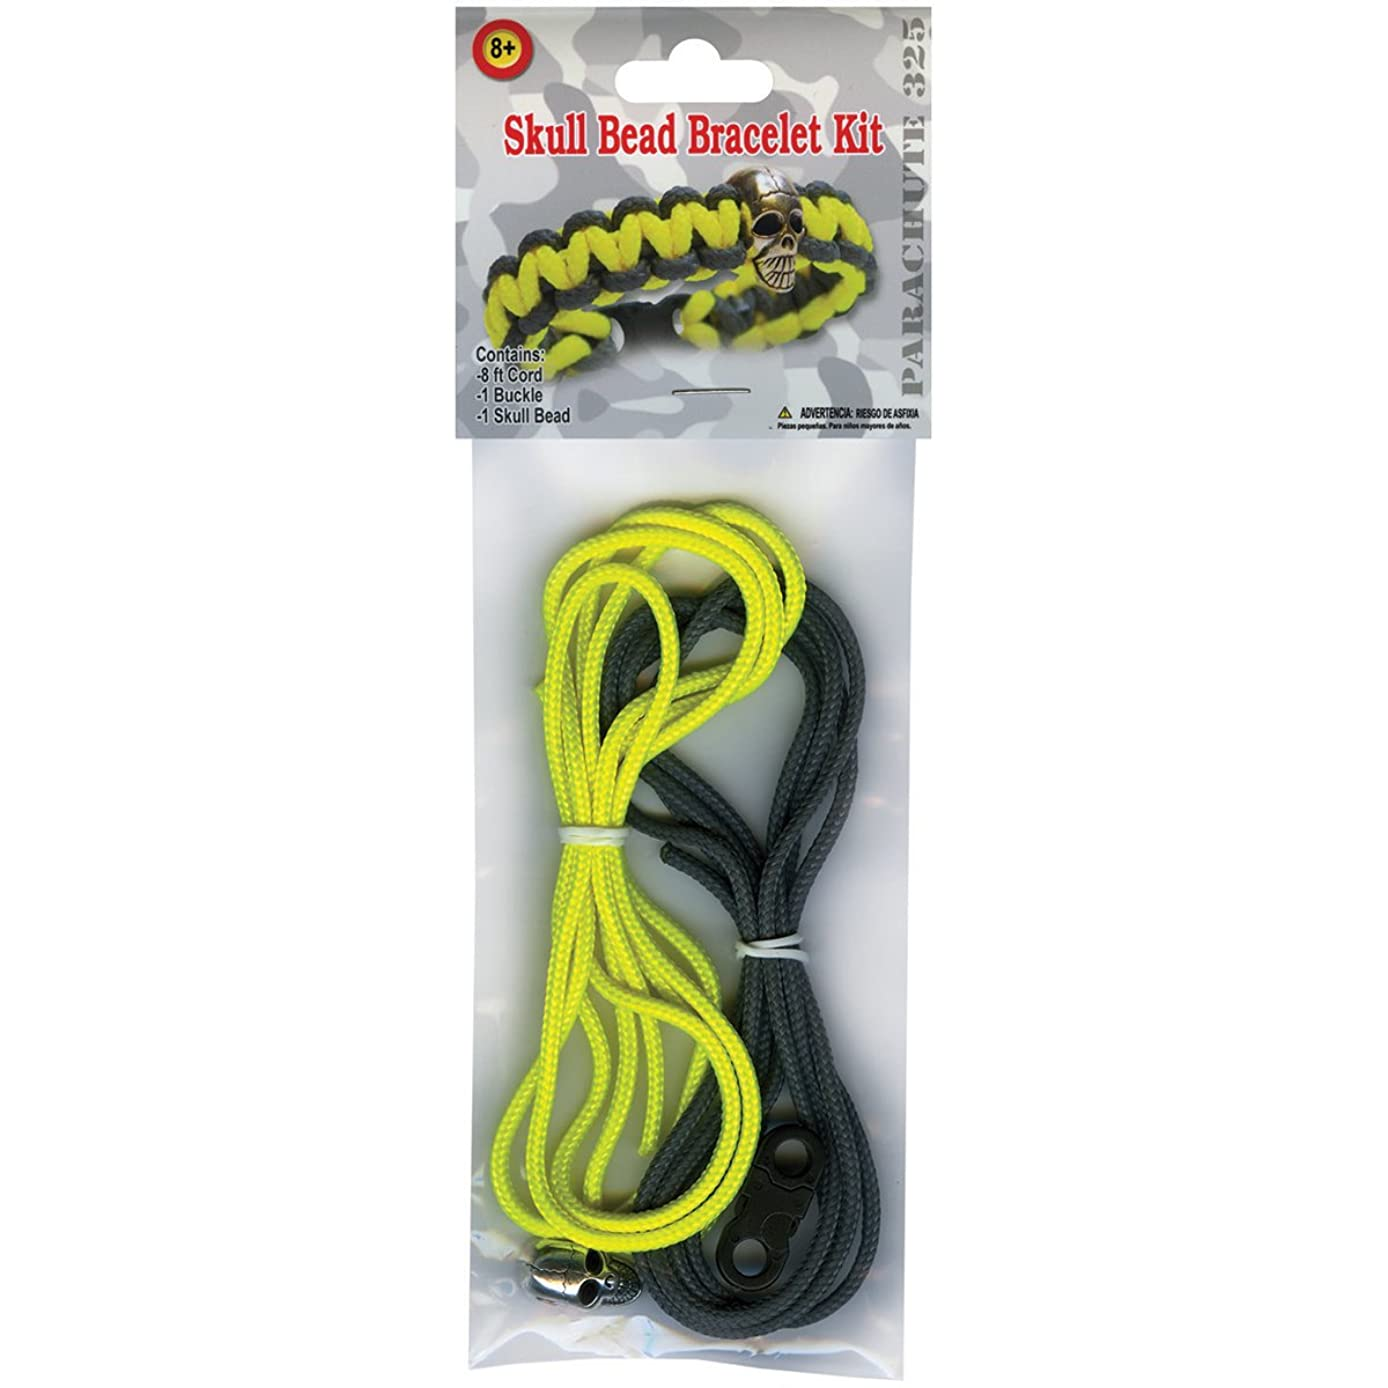 Pepperell Parachute Cord Project Kit, Yellow and Gray Skull Bead